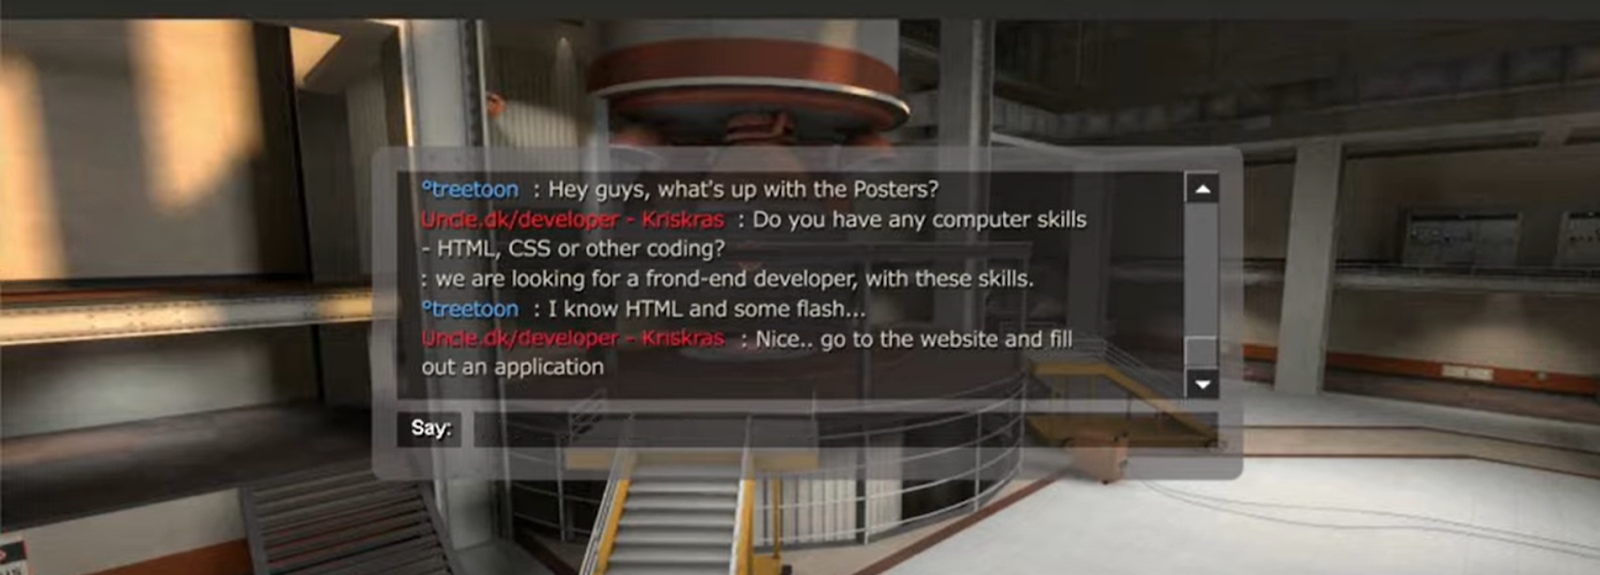 Job opportunities in Team Fortress